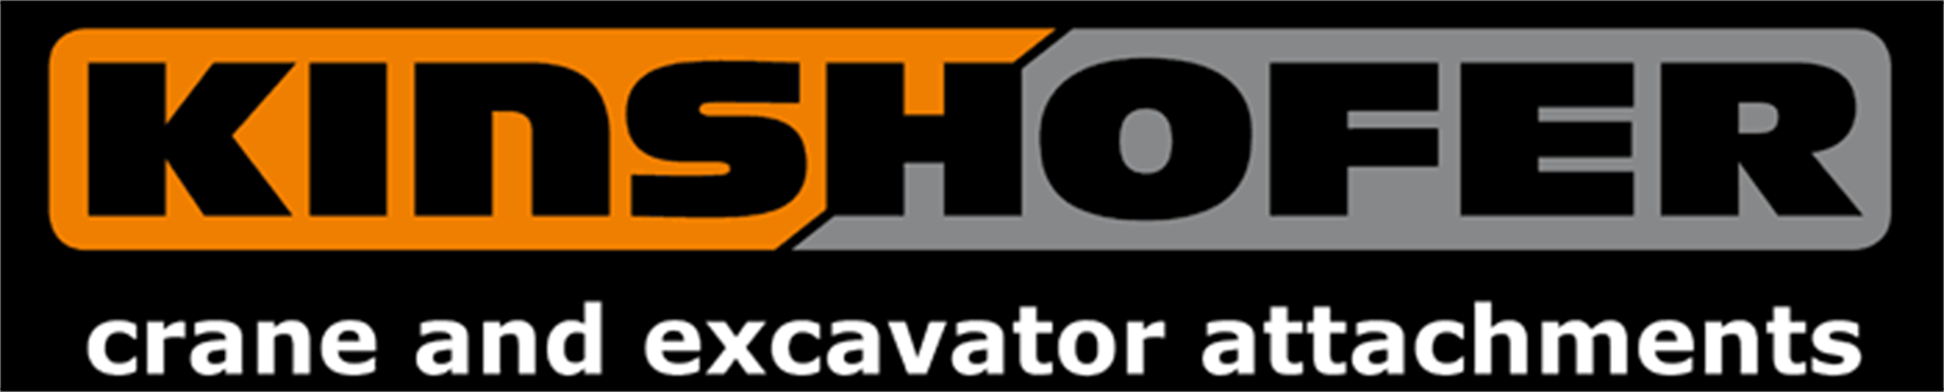 Kinshofer Crane and Excavator Attachments logo